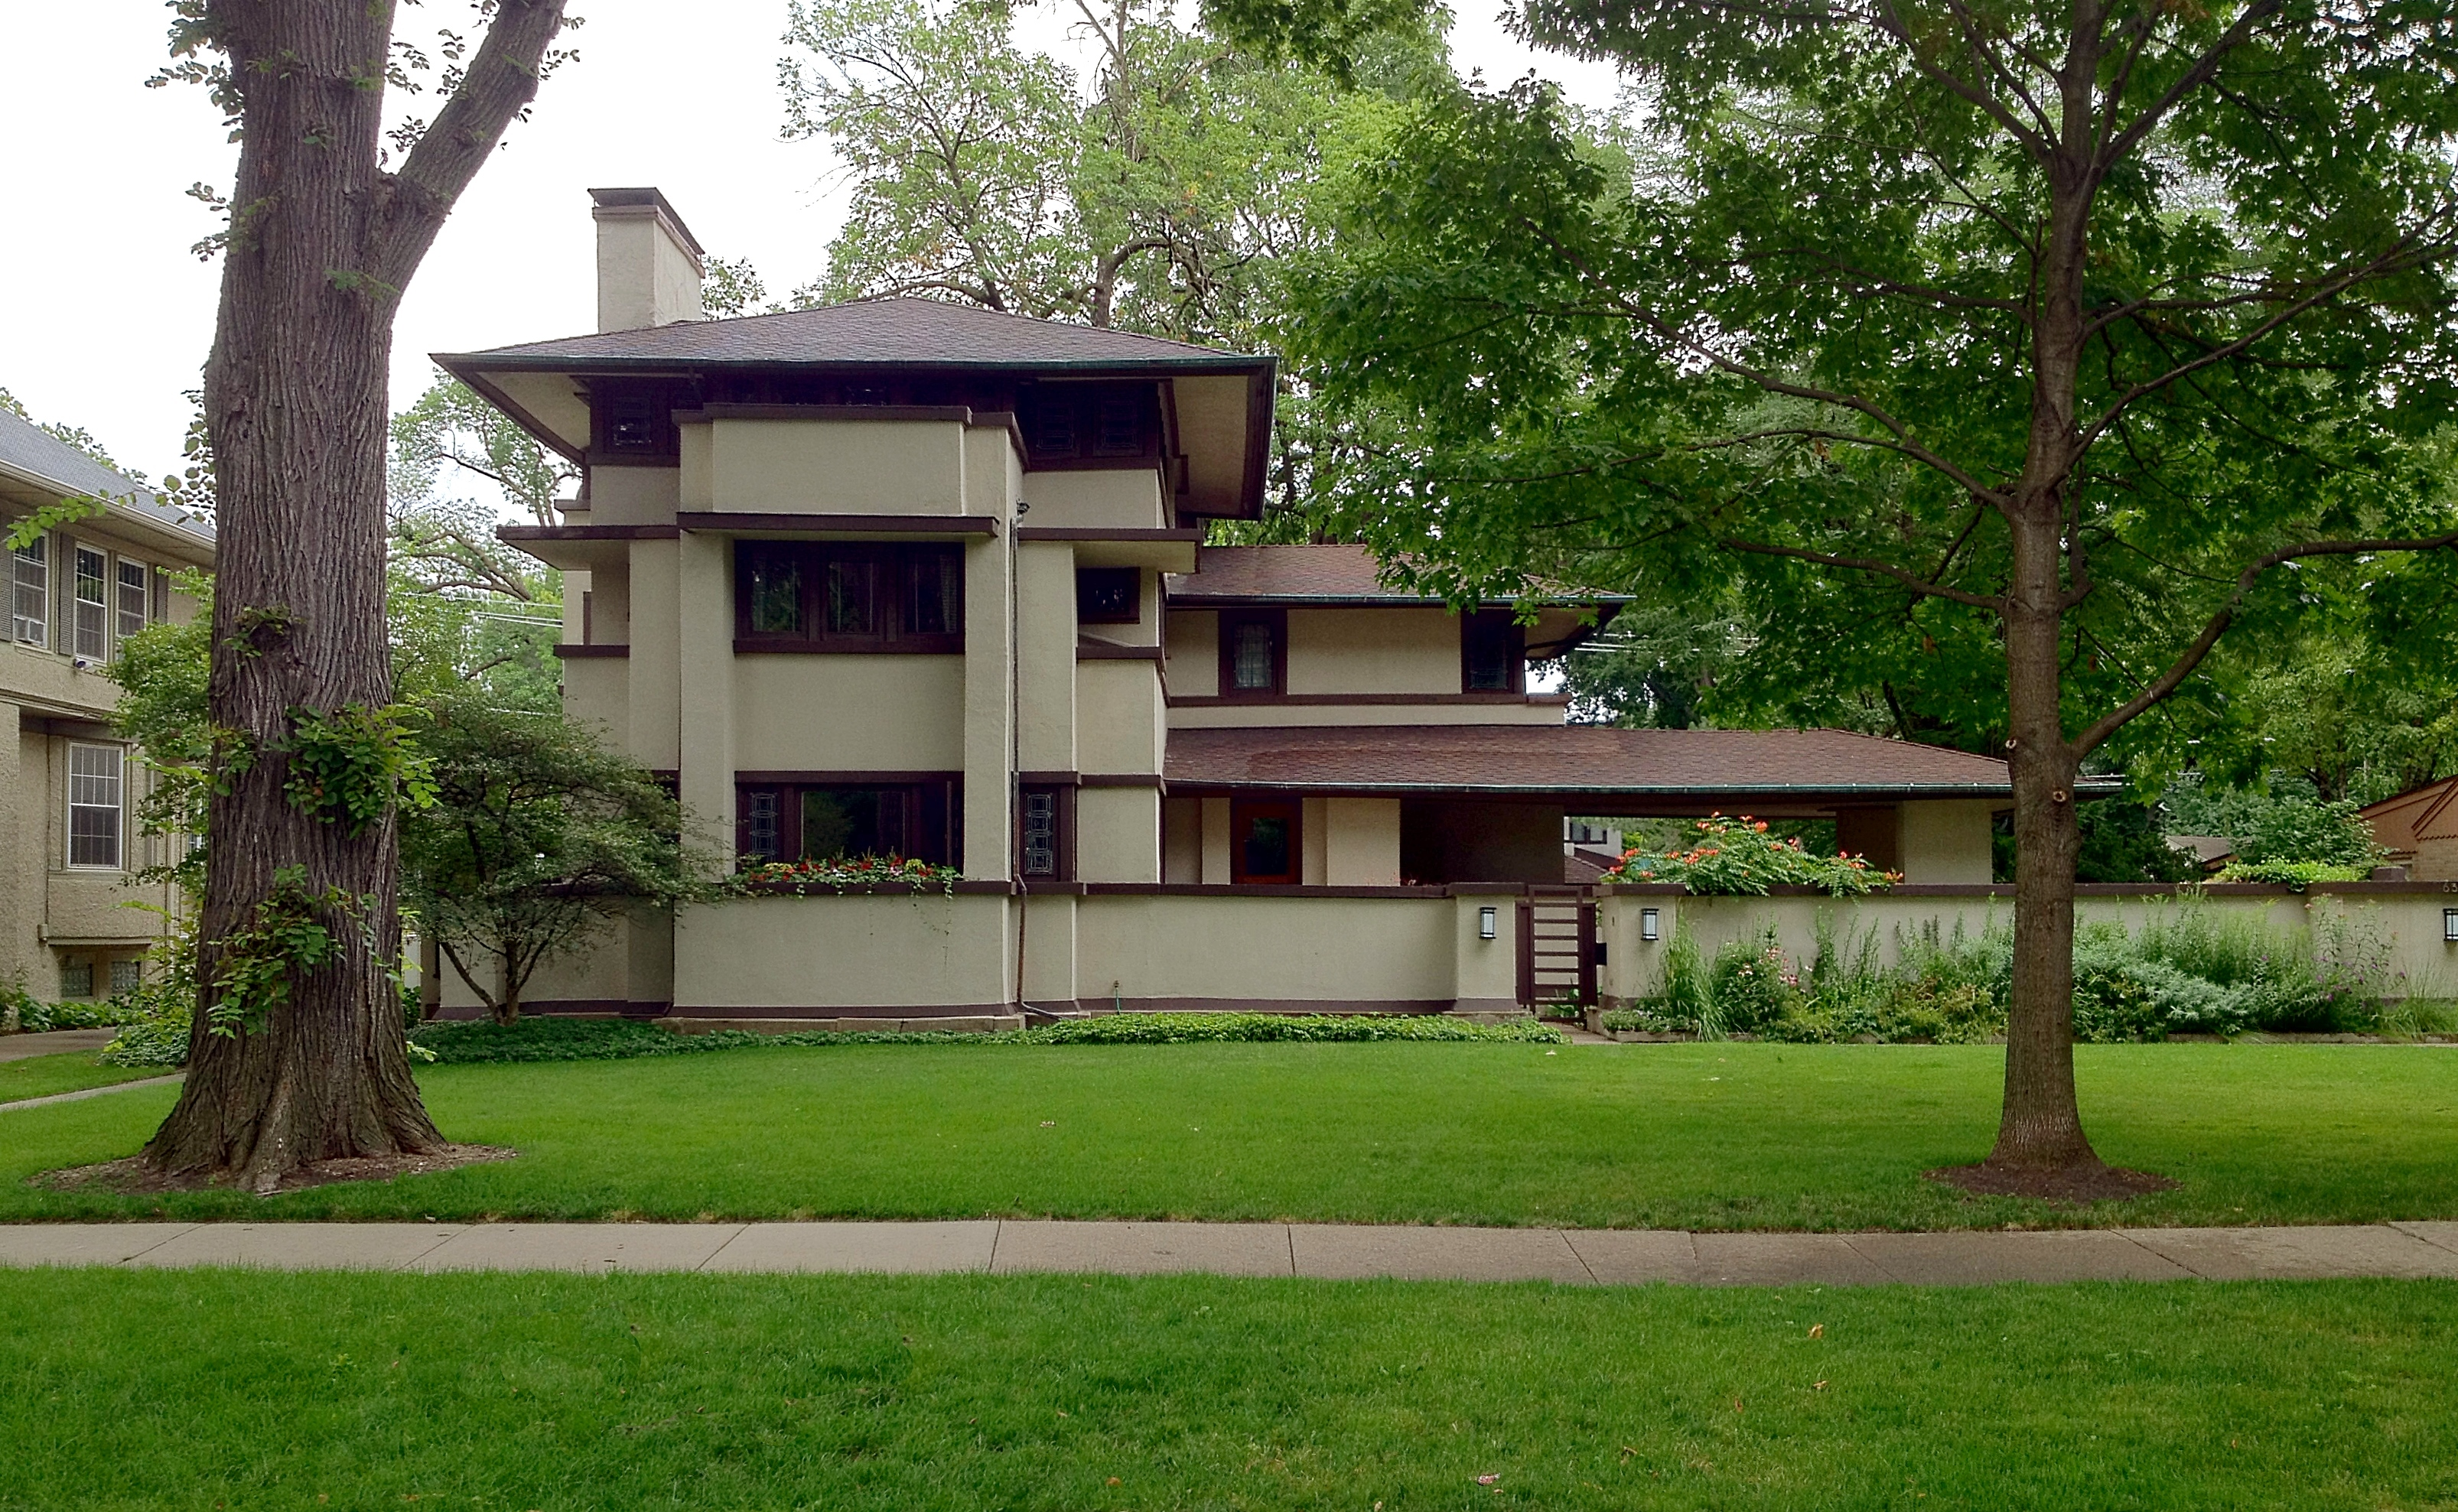 Frank lloyd wright s oak park illinois designs the for Prairie house designs